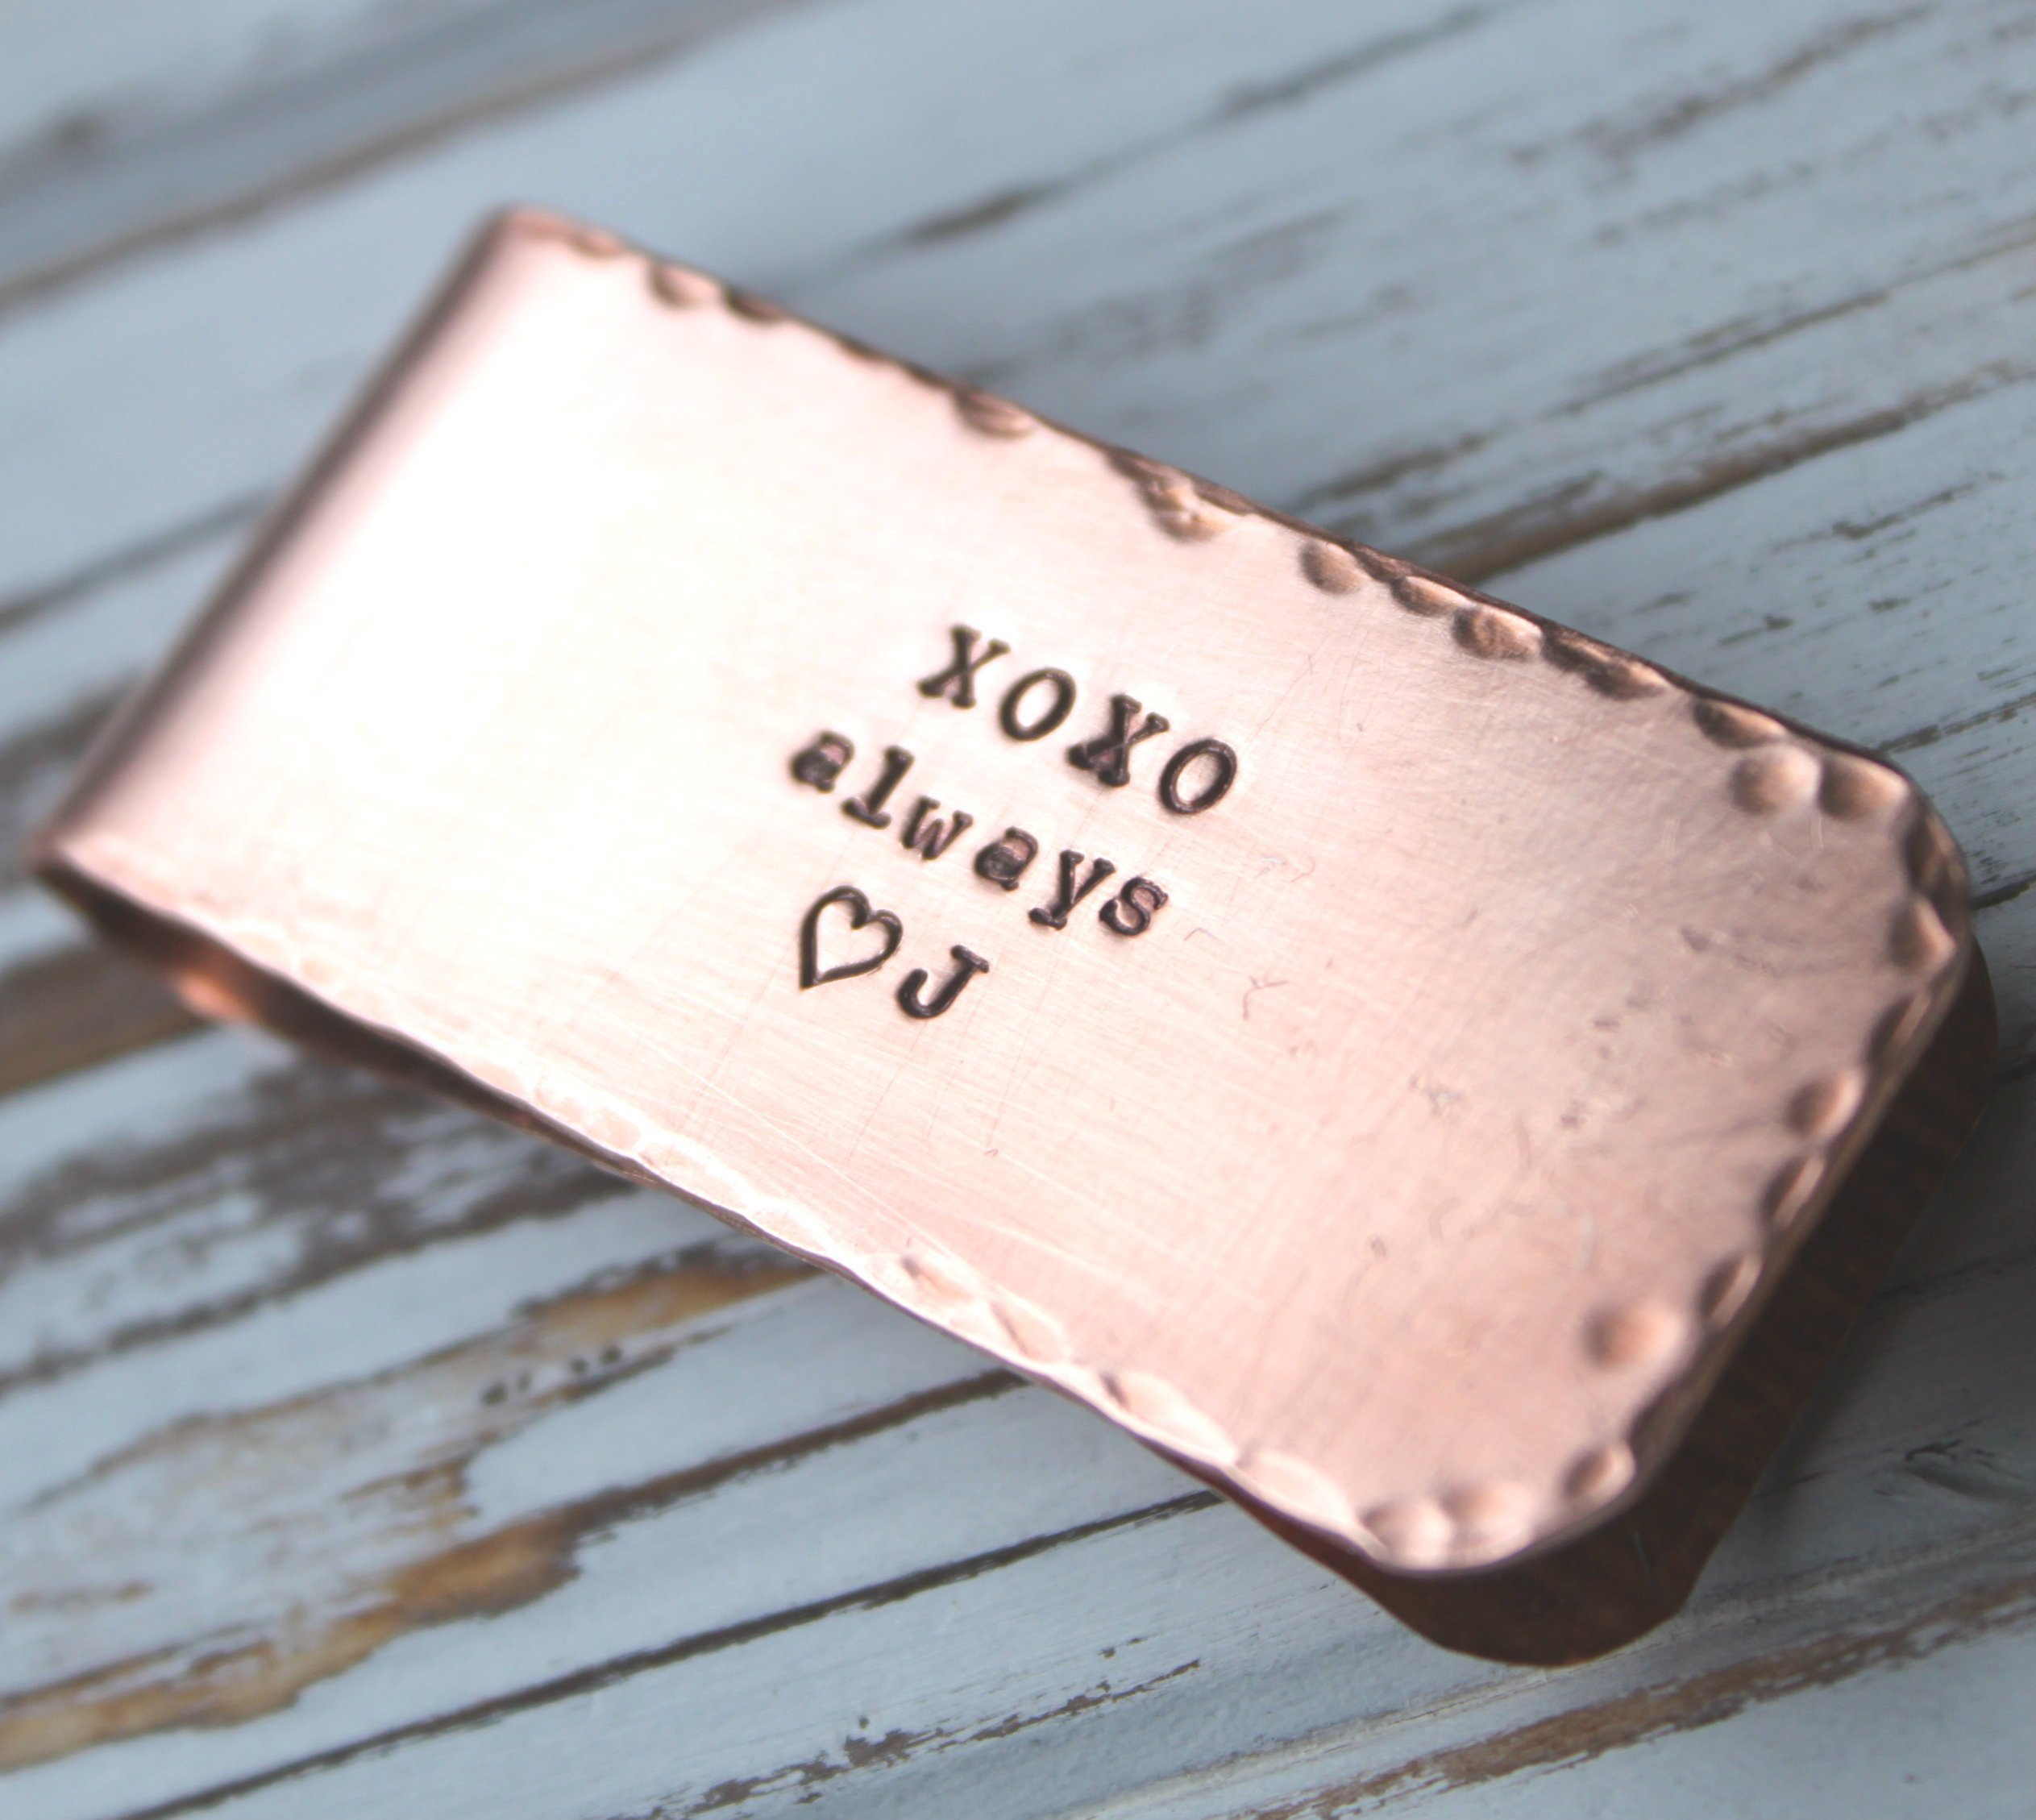 FREE SHIPPING. Hand Stamped Money Clip. Credit Card Holder. Copper or Silver Aluminum. Personalized Custom - Groomsman. Fathers Gift